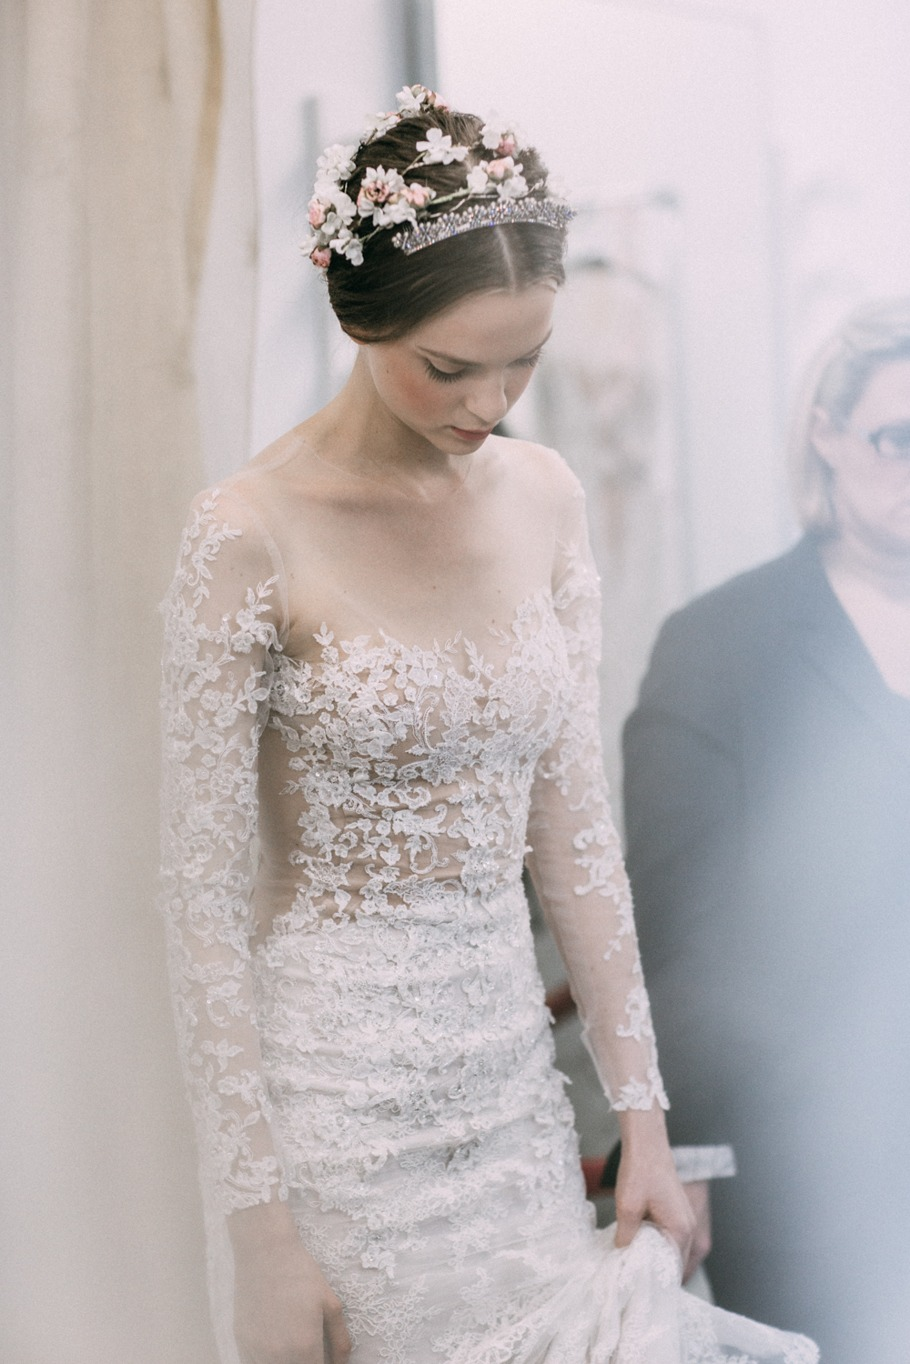 gown by Reem Acra photo by Abby Ross